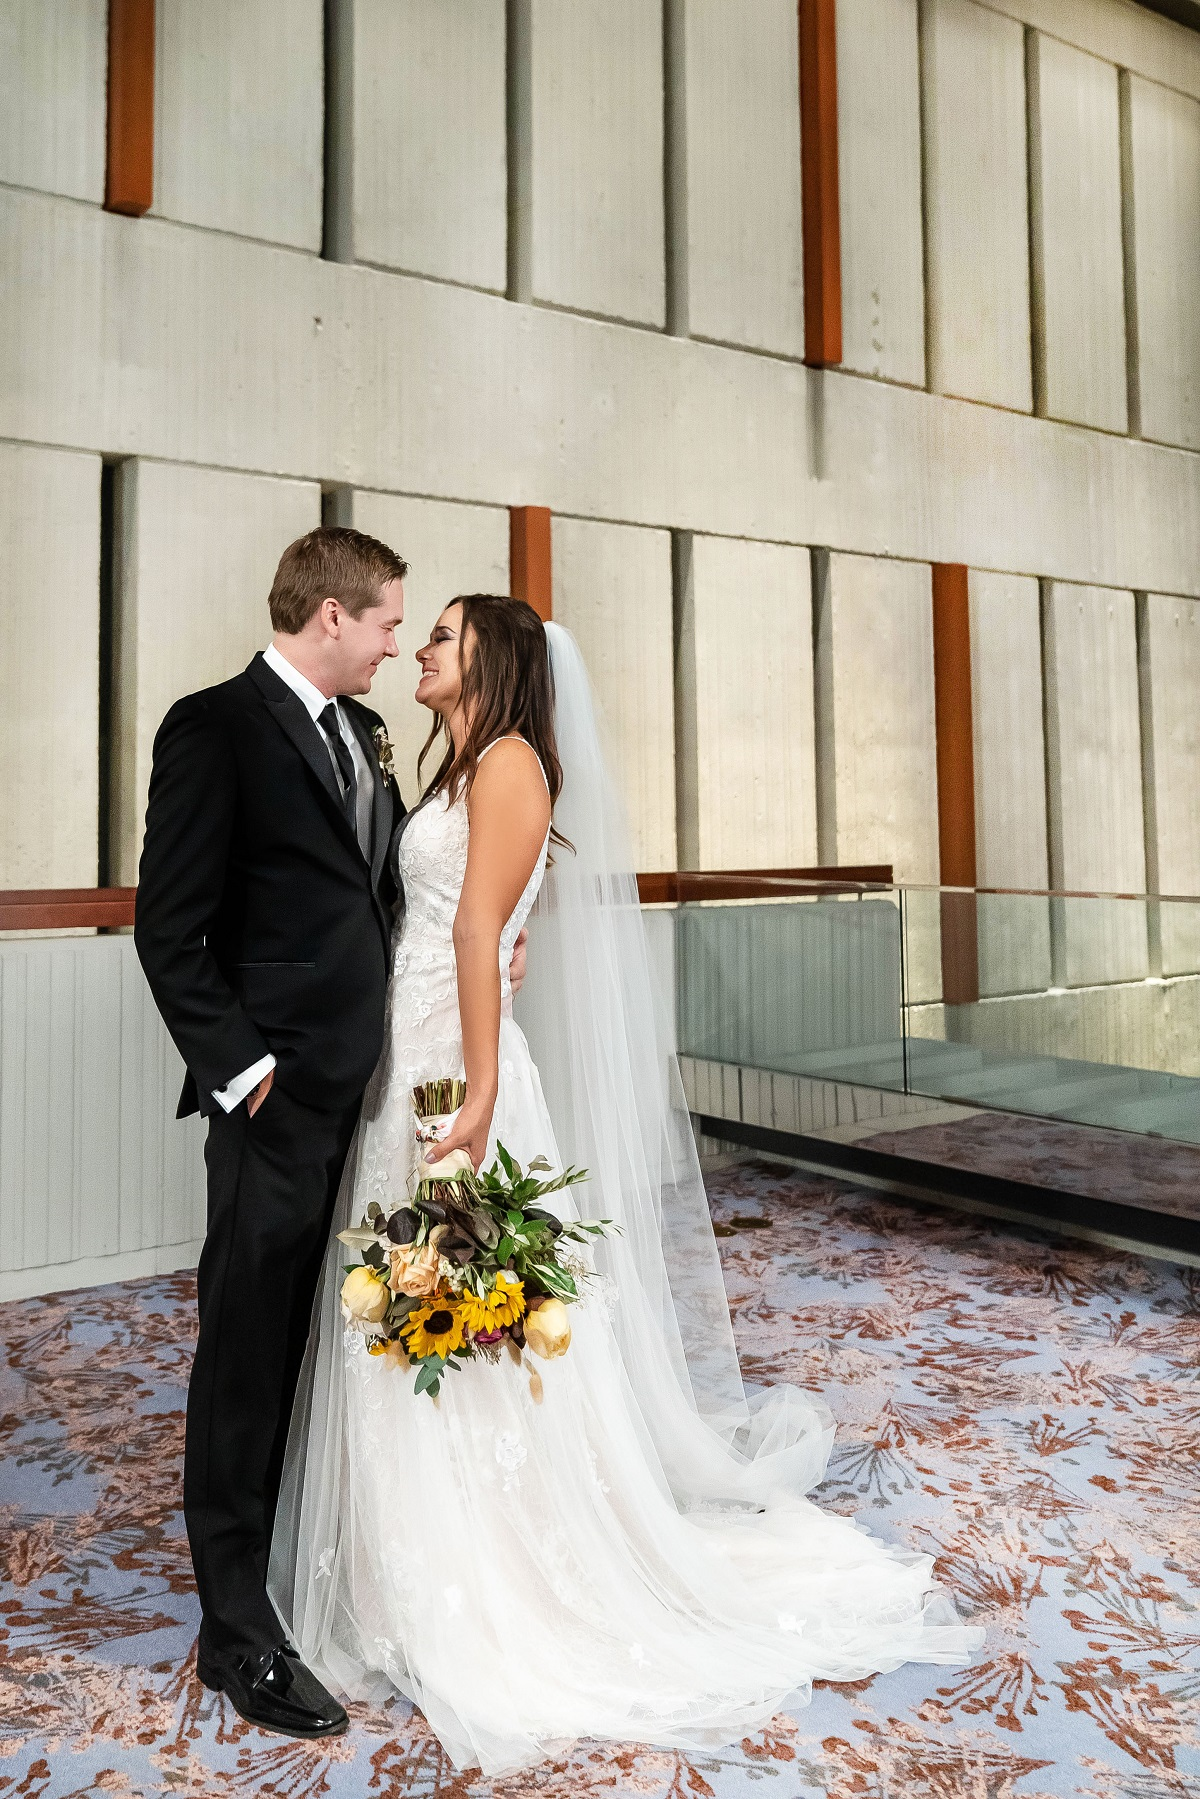 Erik Lake and Virginia Coombs looking into each other's eyes in their wedding day photos on 'Married at First Sight'